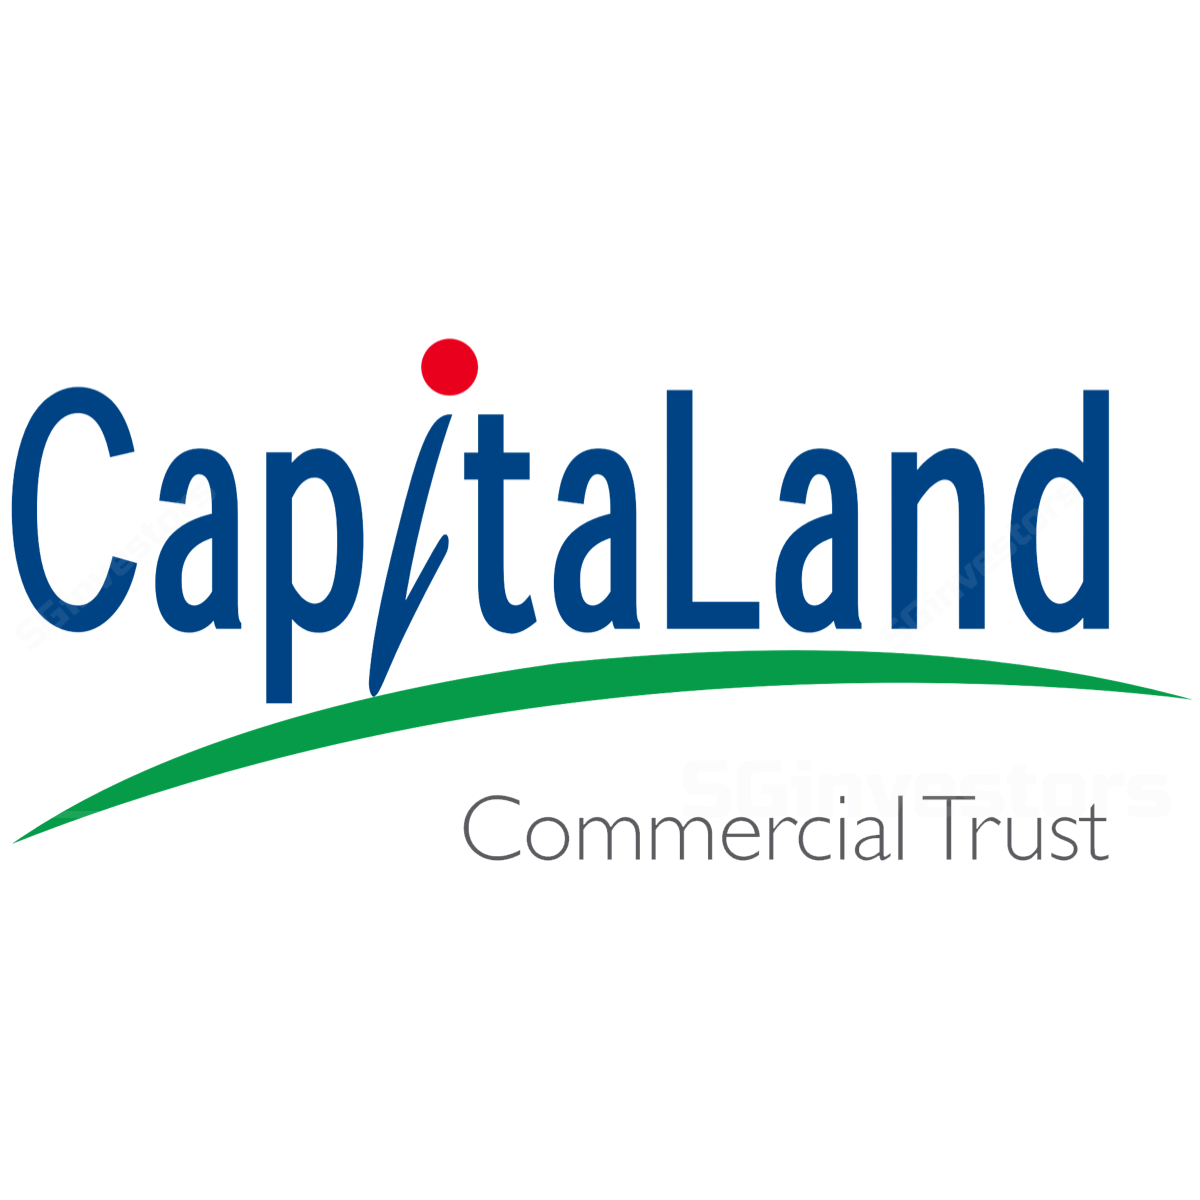 CapitaLand Commercial Trust - Phillip Securities 2018-01-29: A Year Of Portfolio Reconstitution And Bottoming In Office Rents